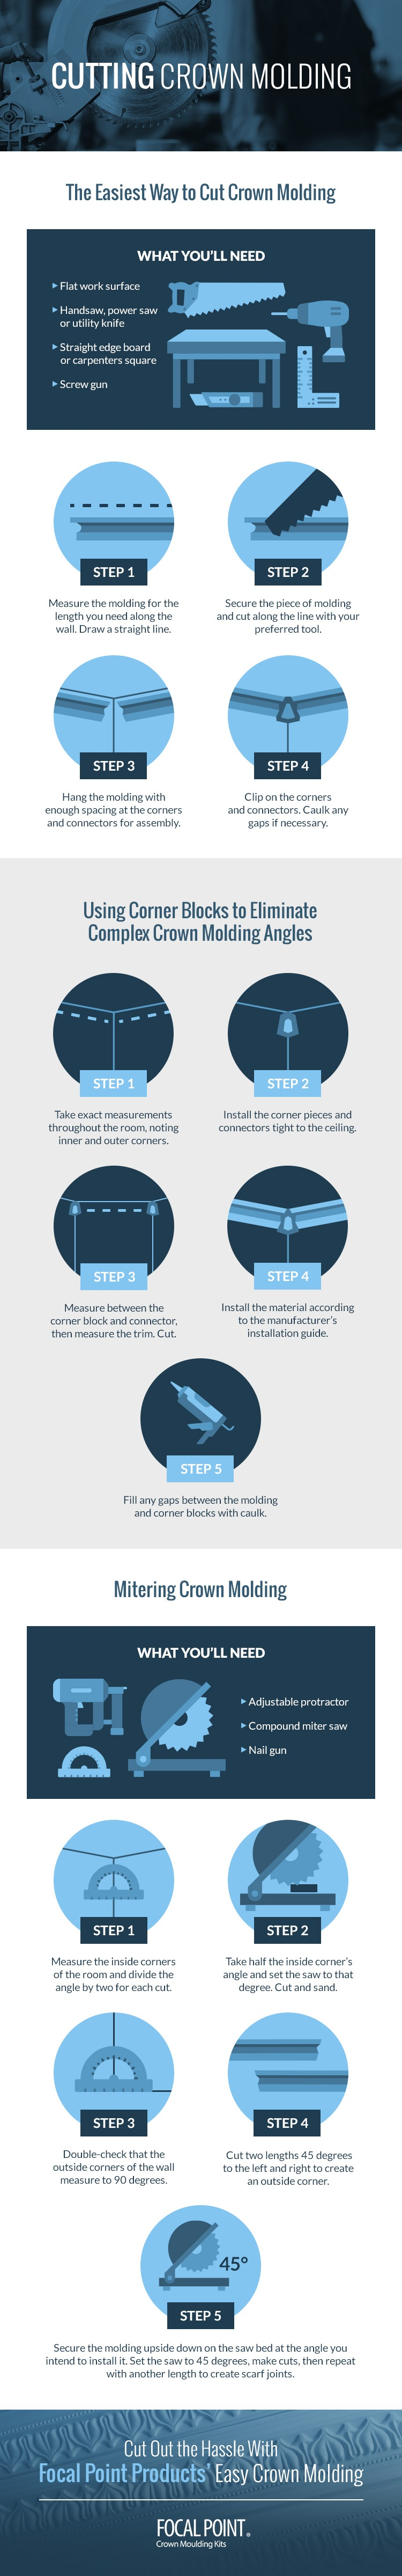 how to cut crown molding infographic